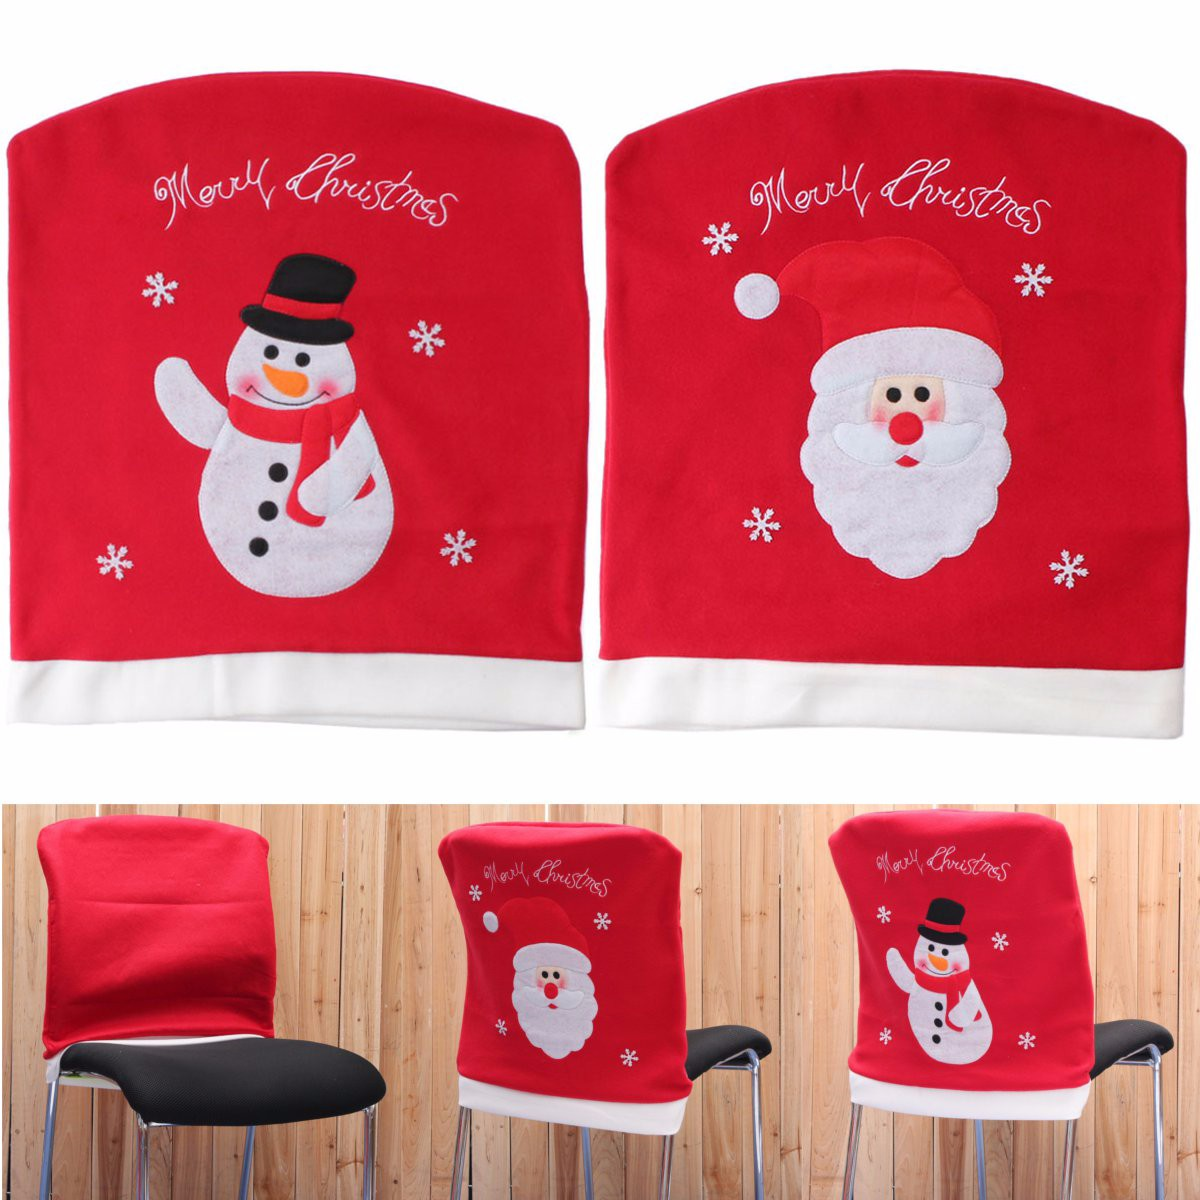 chair cover christmas decorations proper posture in back santa claus snowman dinner